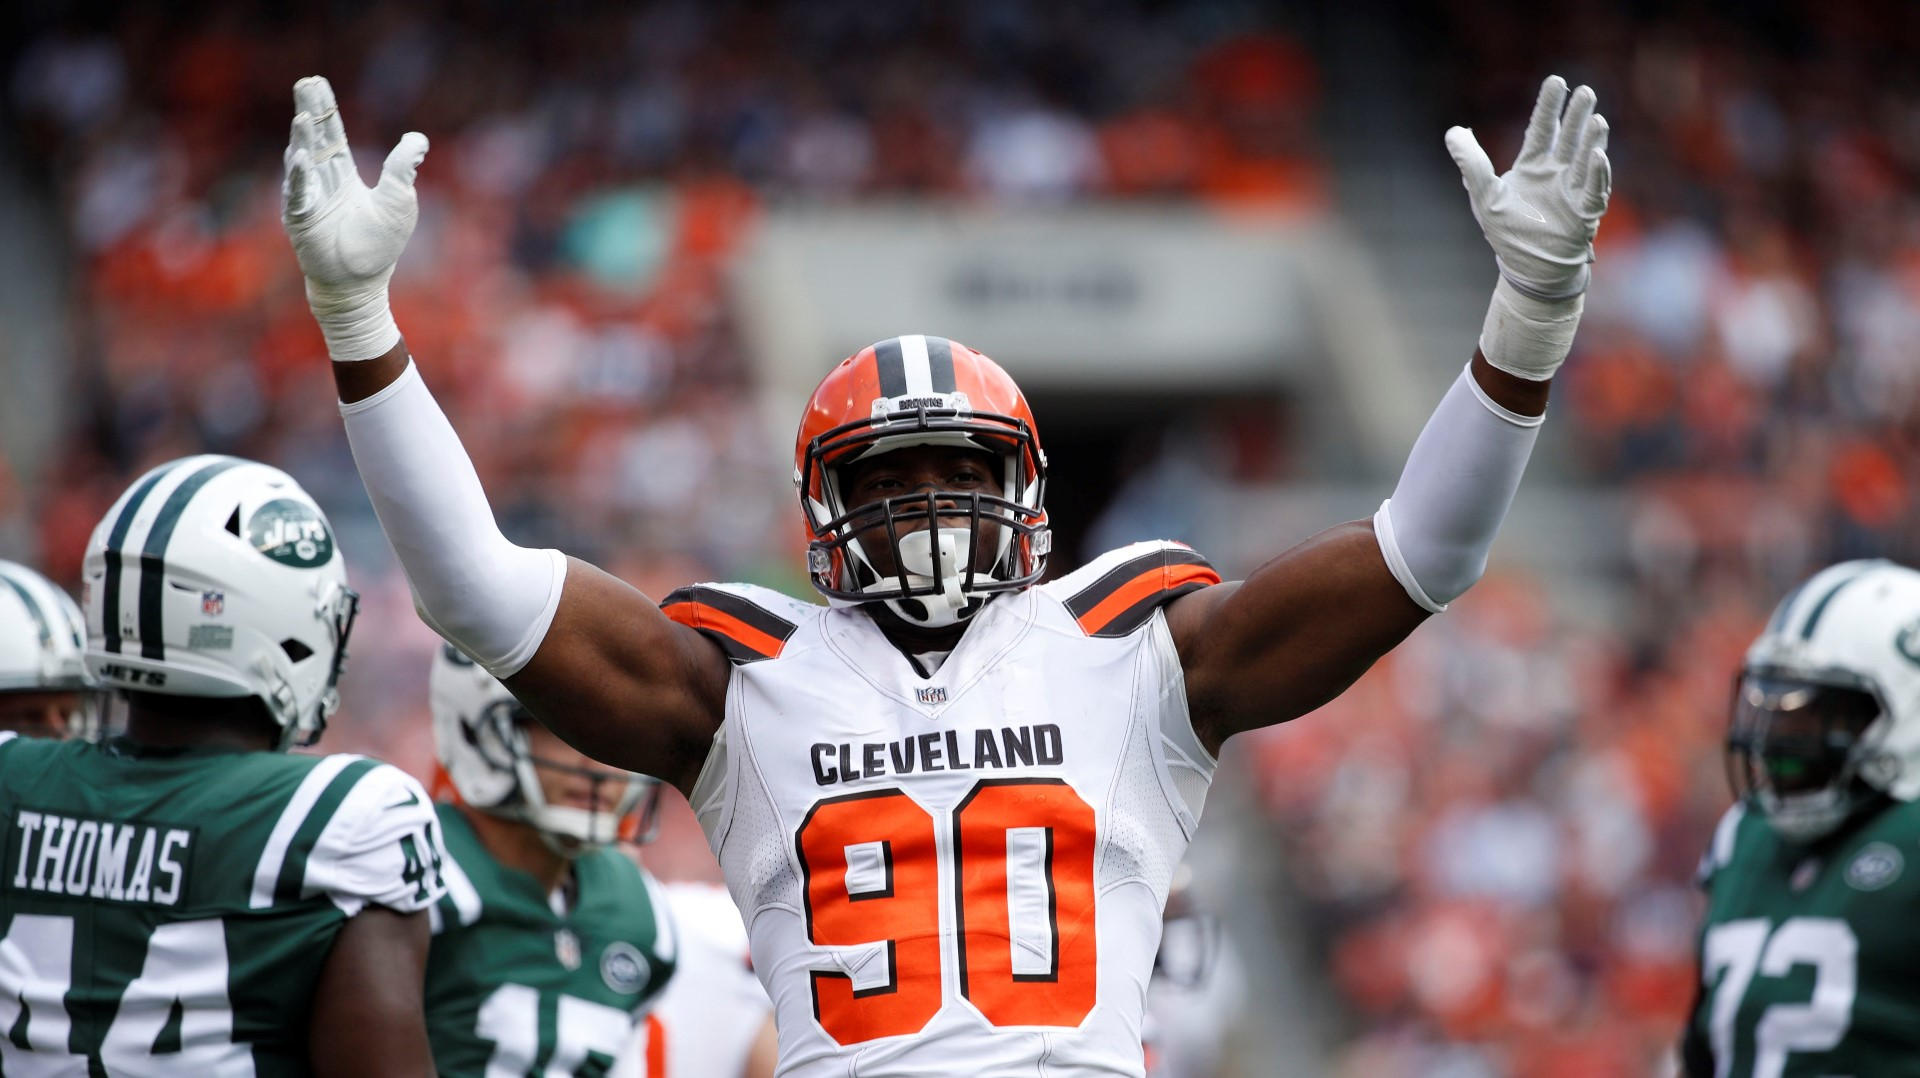 Emmanuel Ogbah: Emmanuel Ogbah On Perfect Season Parade: 'Don't